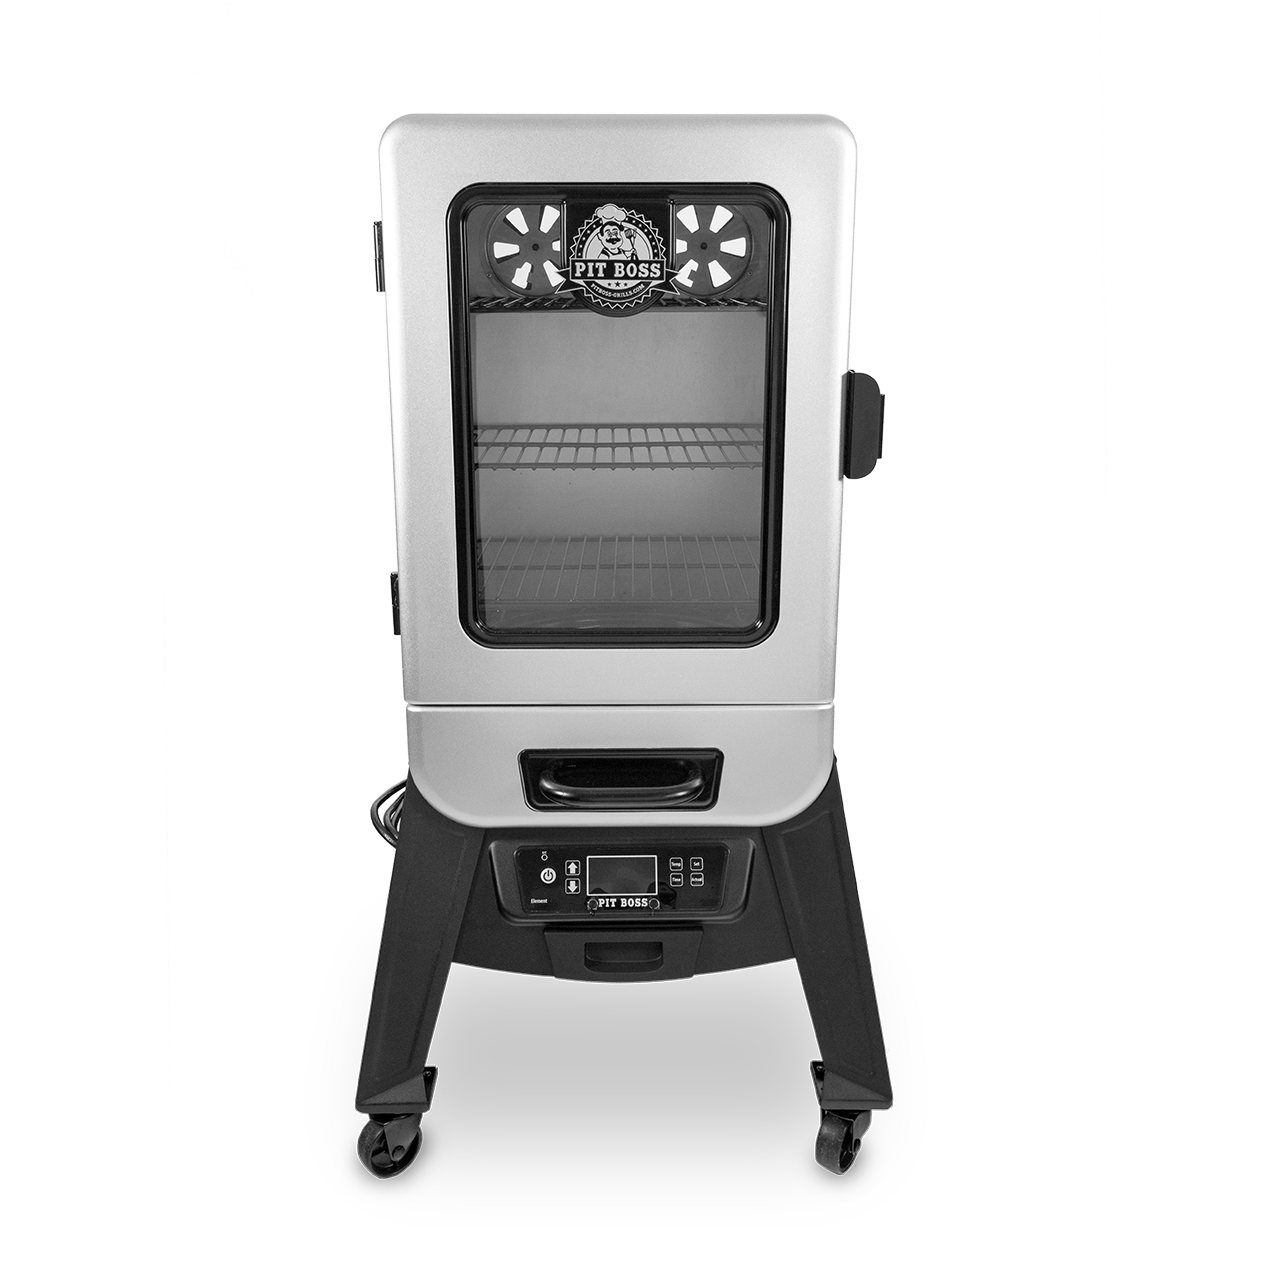 Pit Boss 2-SERIES DIGITAL VERTICAL SMOKER